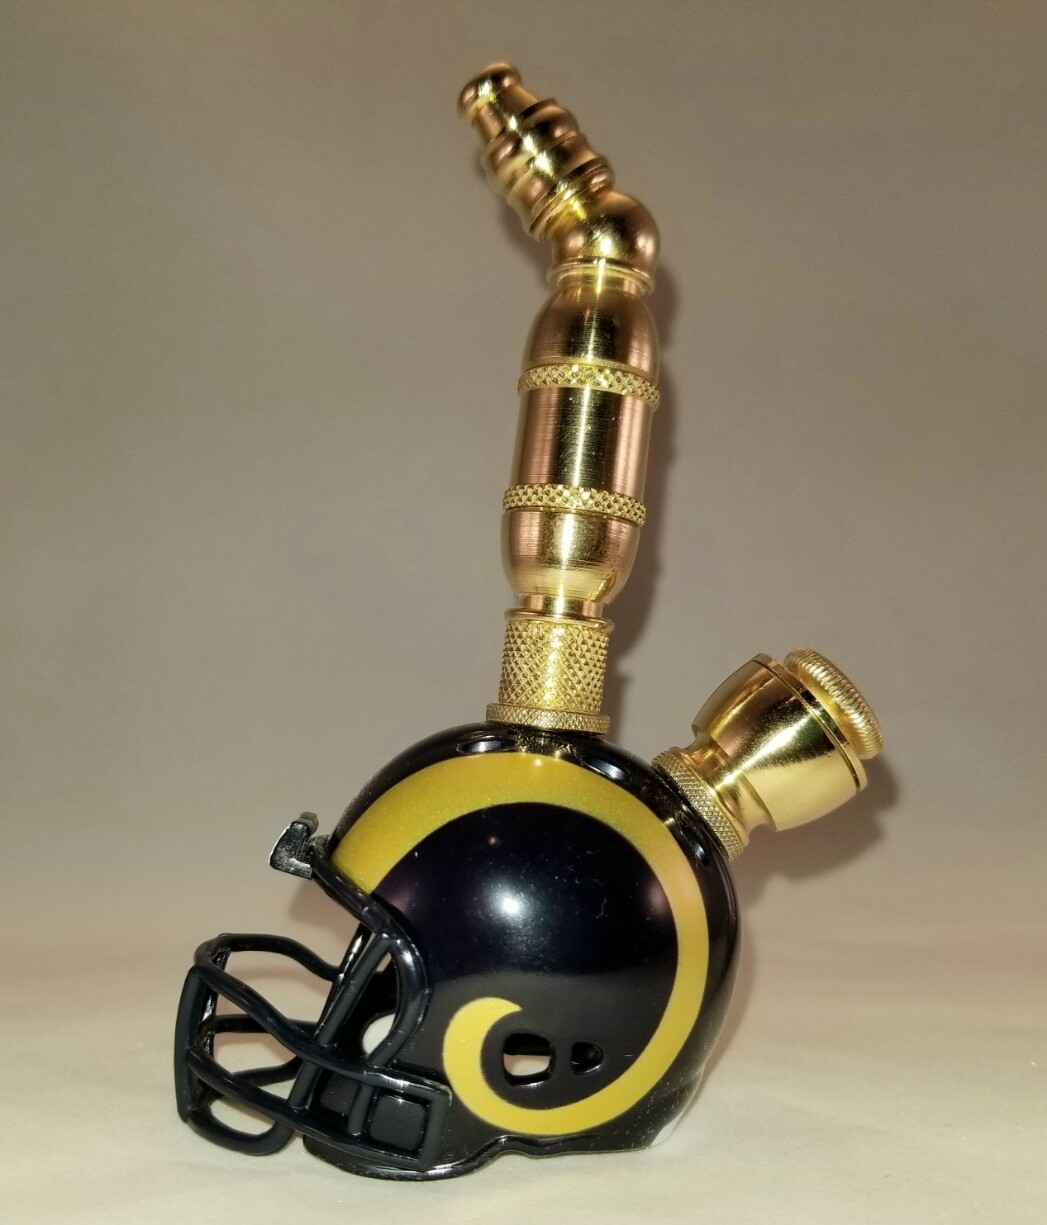 ST. LOUIS RAMS NFL  FOOTBALL HELMET SMOKING PIPE Upright/Brass